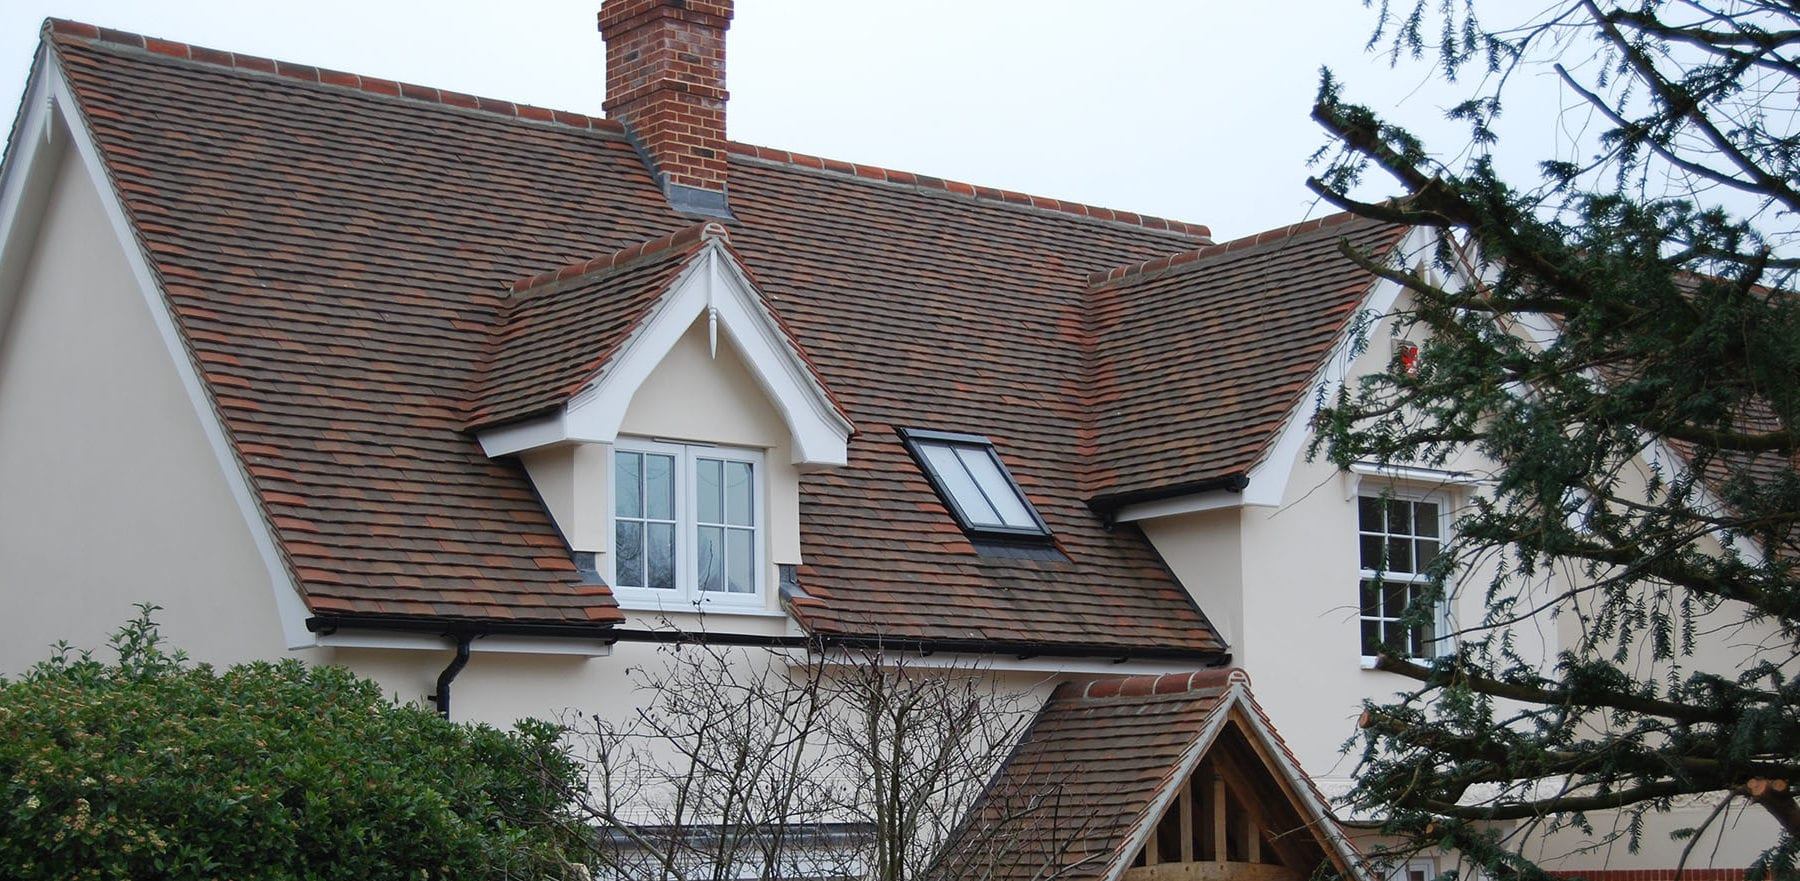 Lifestiles - Handcrafted Autumn Clay Roof Tiles - Bergholt, England 2